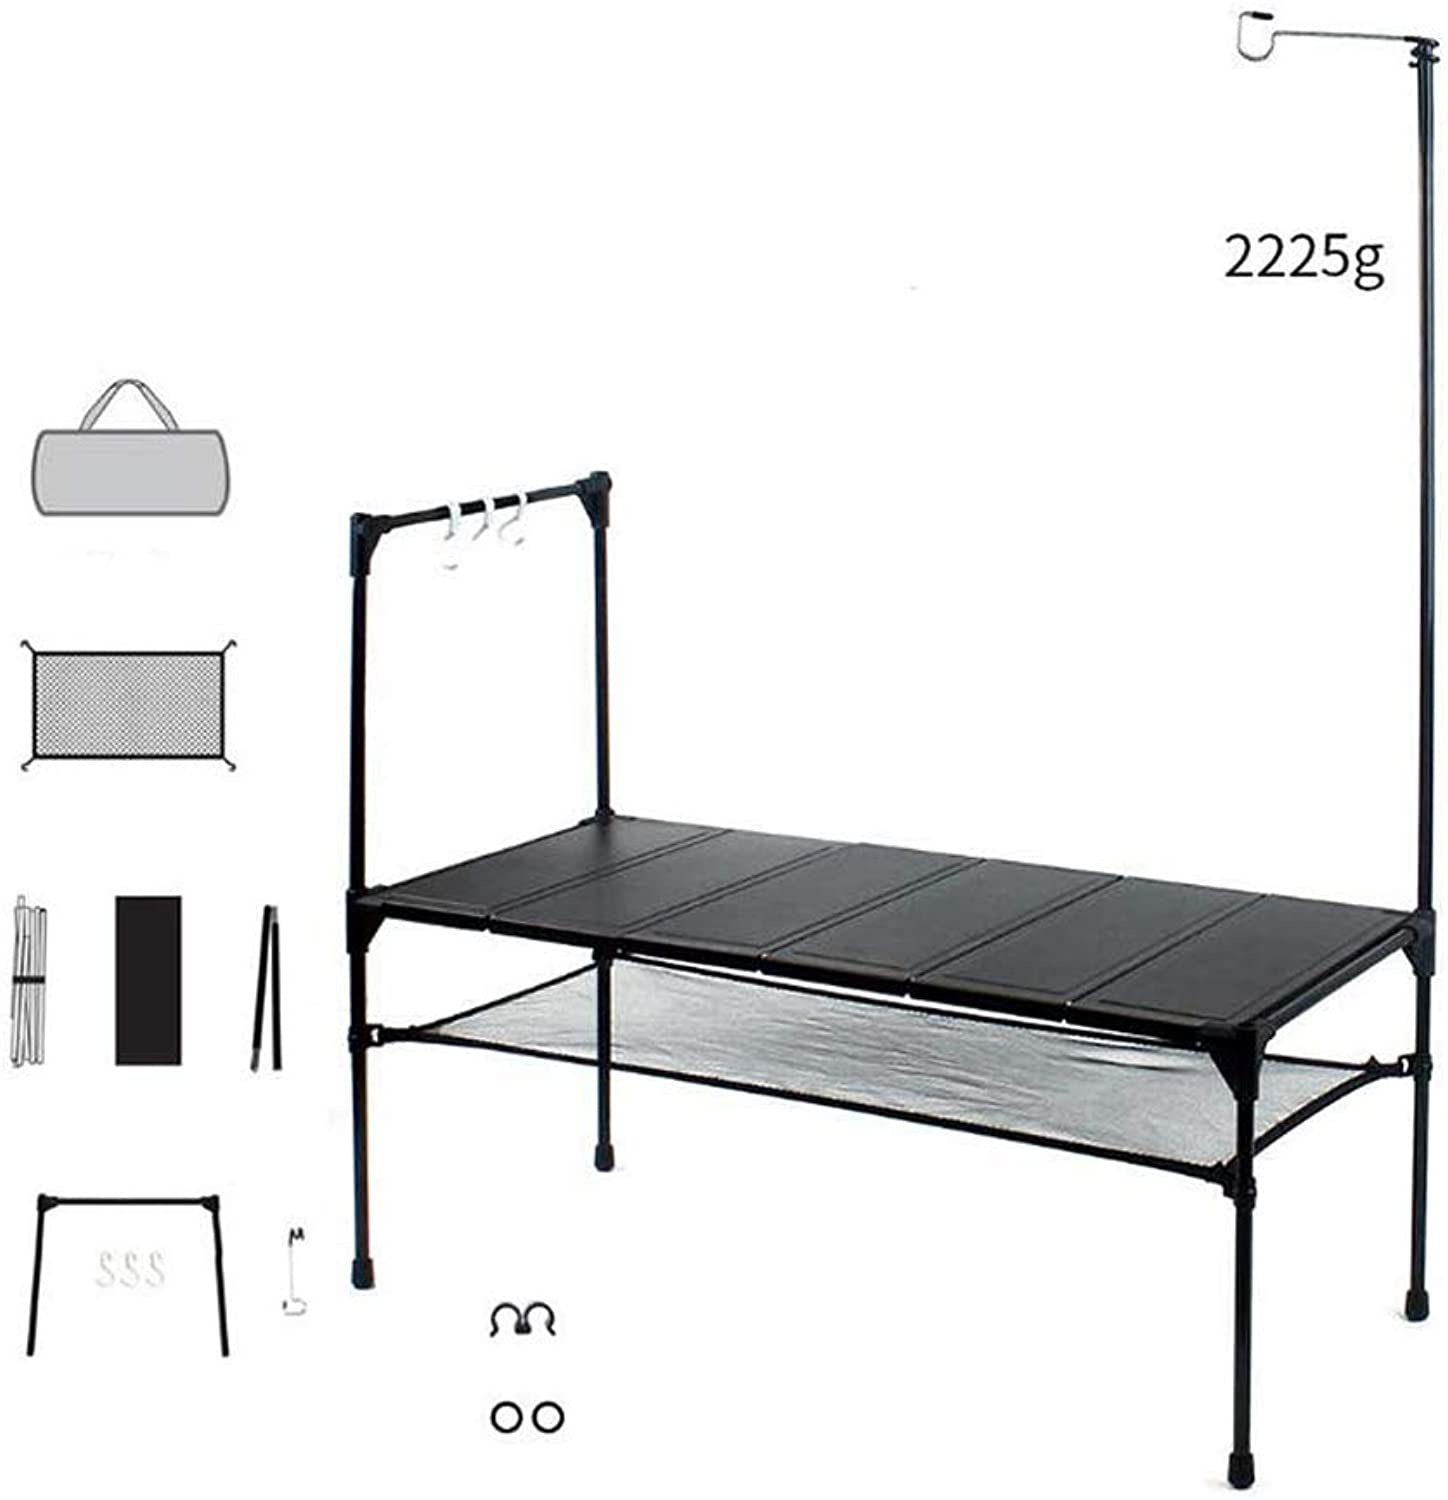 Camping Folding Table, Lightweight Portable - 6 Sheets of Aluminum Tabletop Free Splicing - with Light Stand Hook Up Net Pocket for Beach Backyard Barbecue